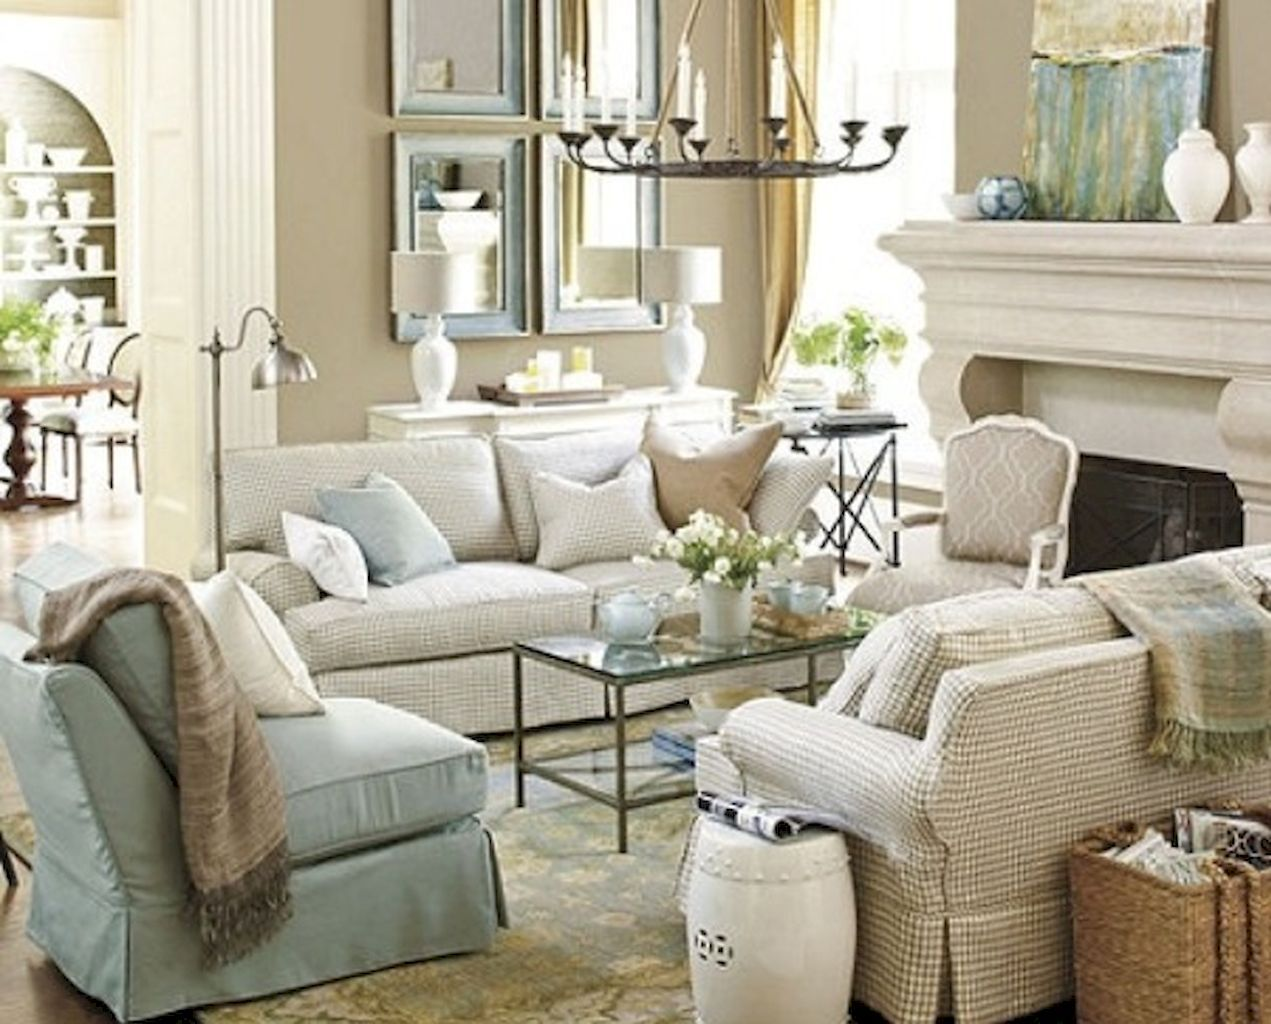 glamorous turquoise beige living room | Beautiful French Country Living Room Ideas (51) | Beige ...